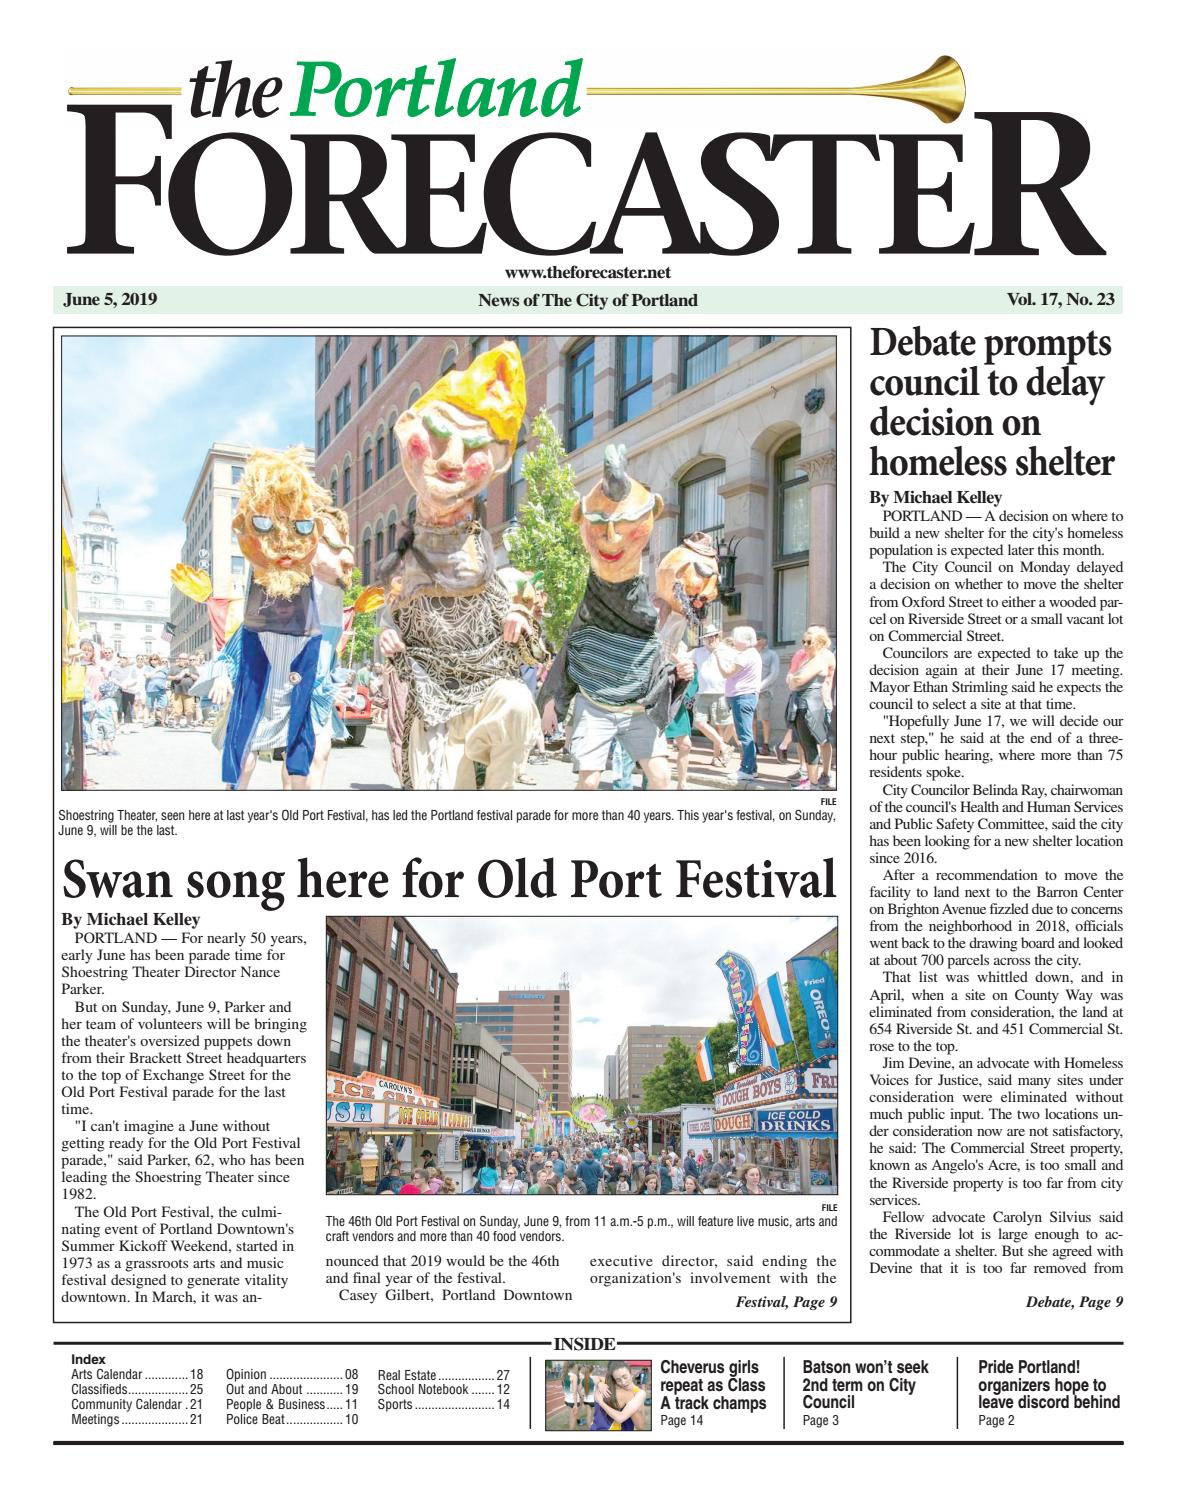 The Forecaster, Portland Edition, June 5, 2019The For Caesar Rodney School District Calendar At A Glance